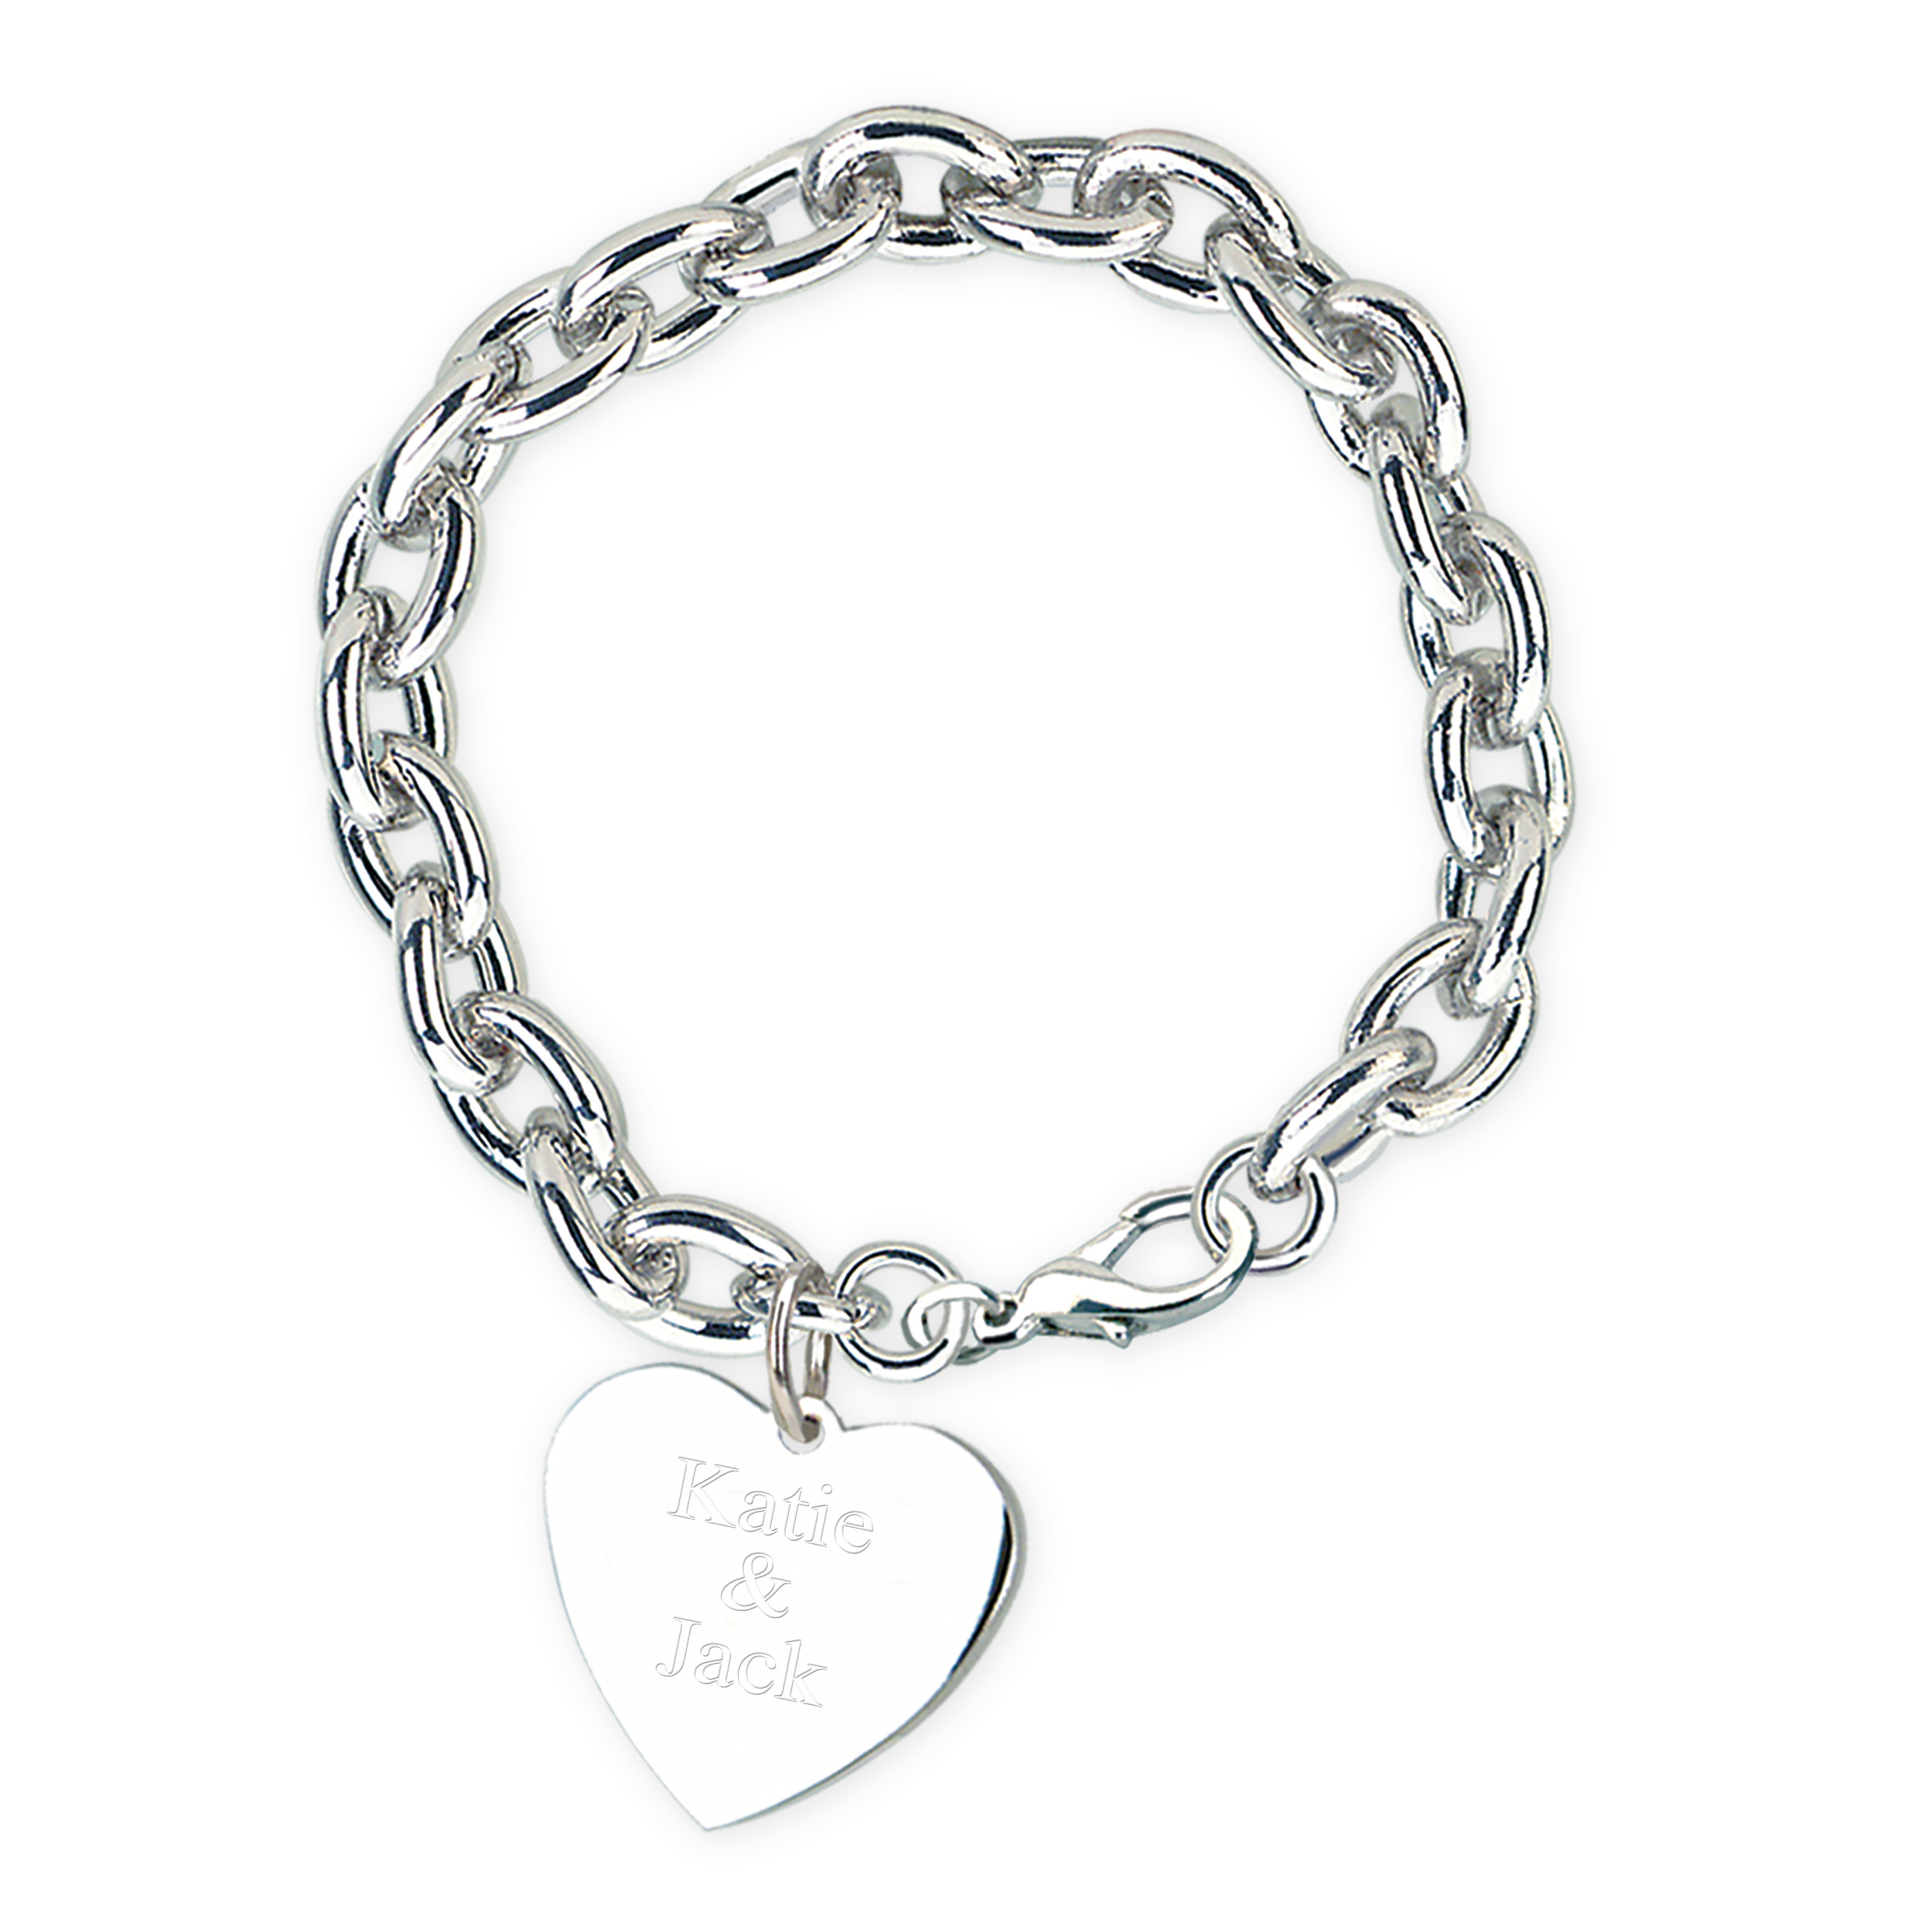 Polished Silver Heart Charm Link Bracelet with Lobster Clasp Closure